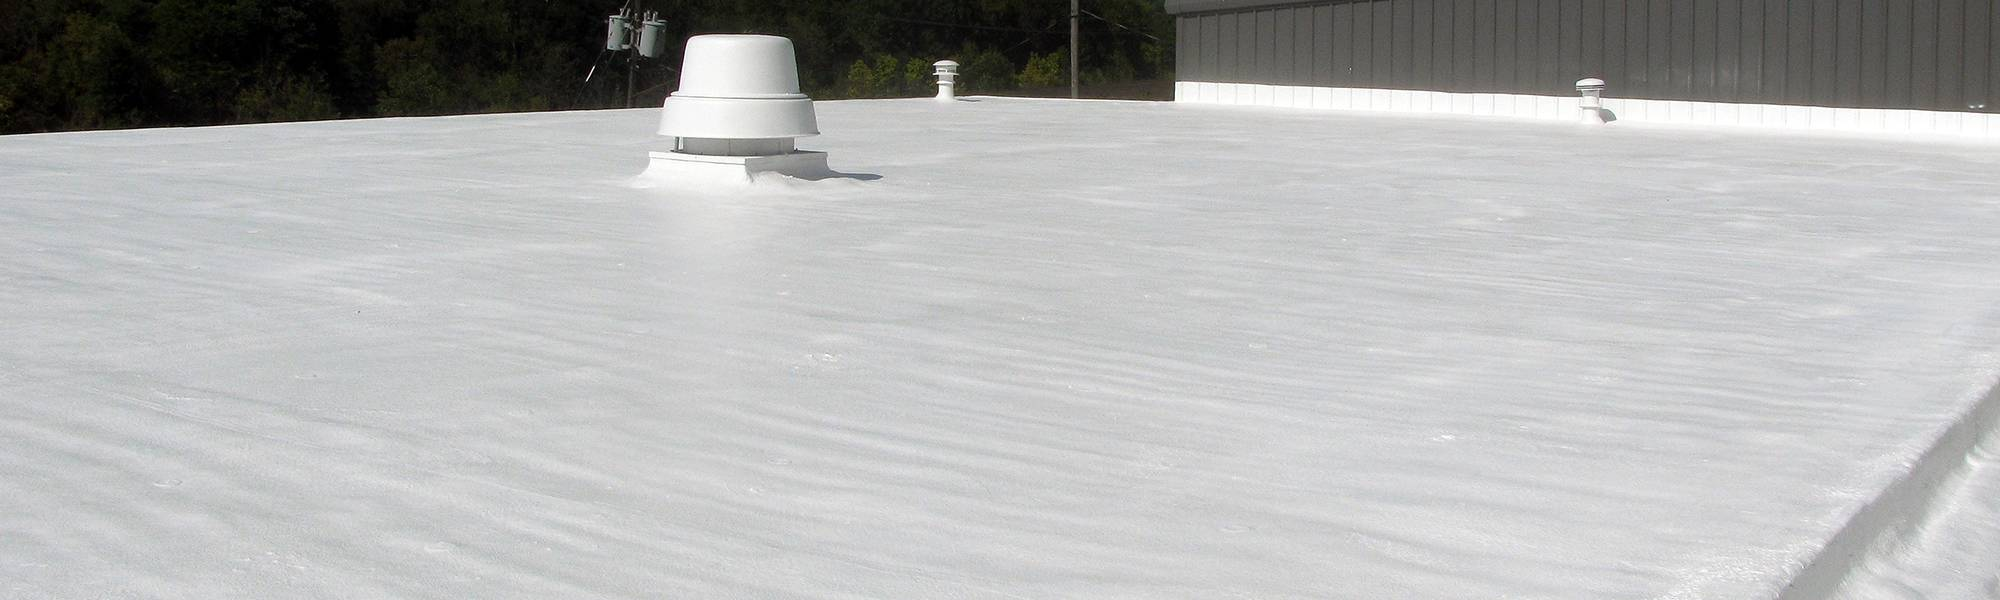 Absolute Commercial Roofing Provides Installation, Repair, Maintenance,  Restoration, And Replacement Services For All Types Of Commercial Roofing.